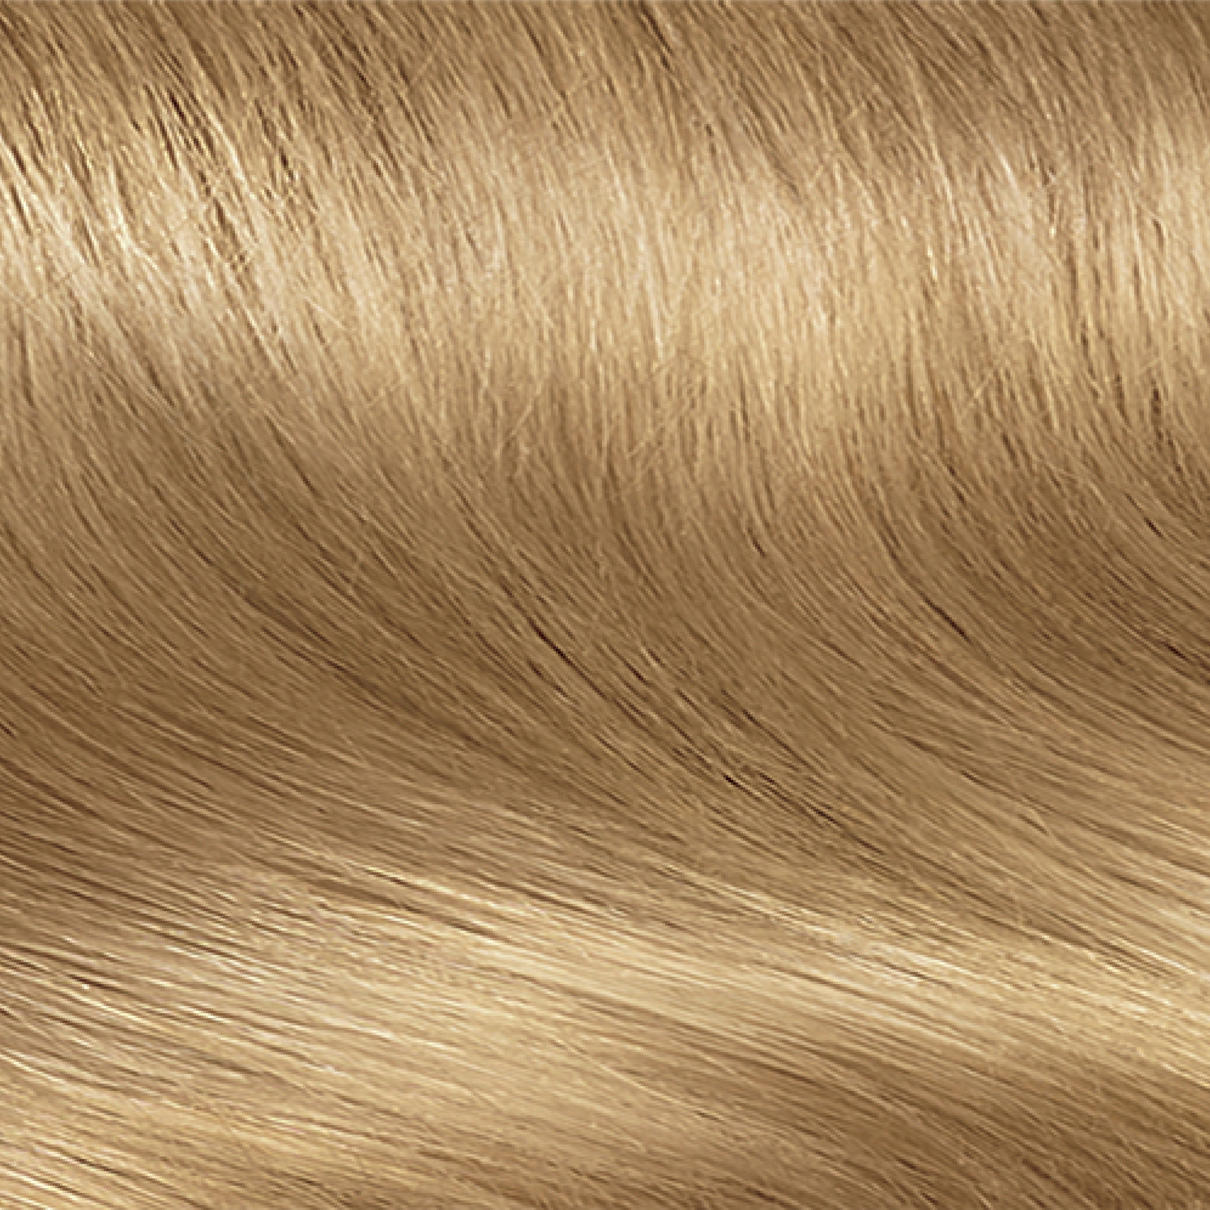 Permanent hair color clairol nice n easy 8 medium neutral blonde nvjuhfo Image collections